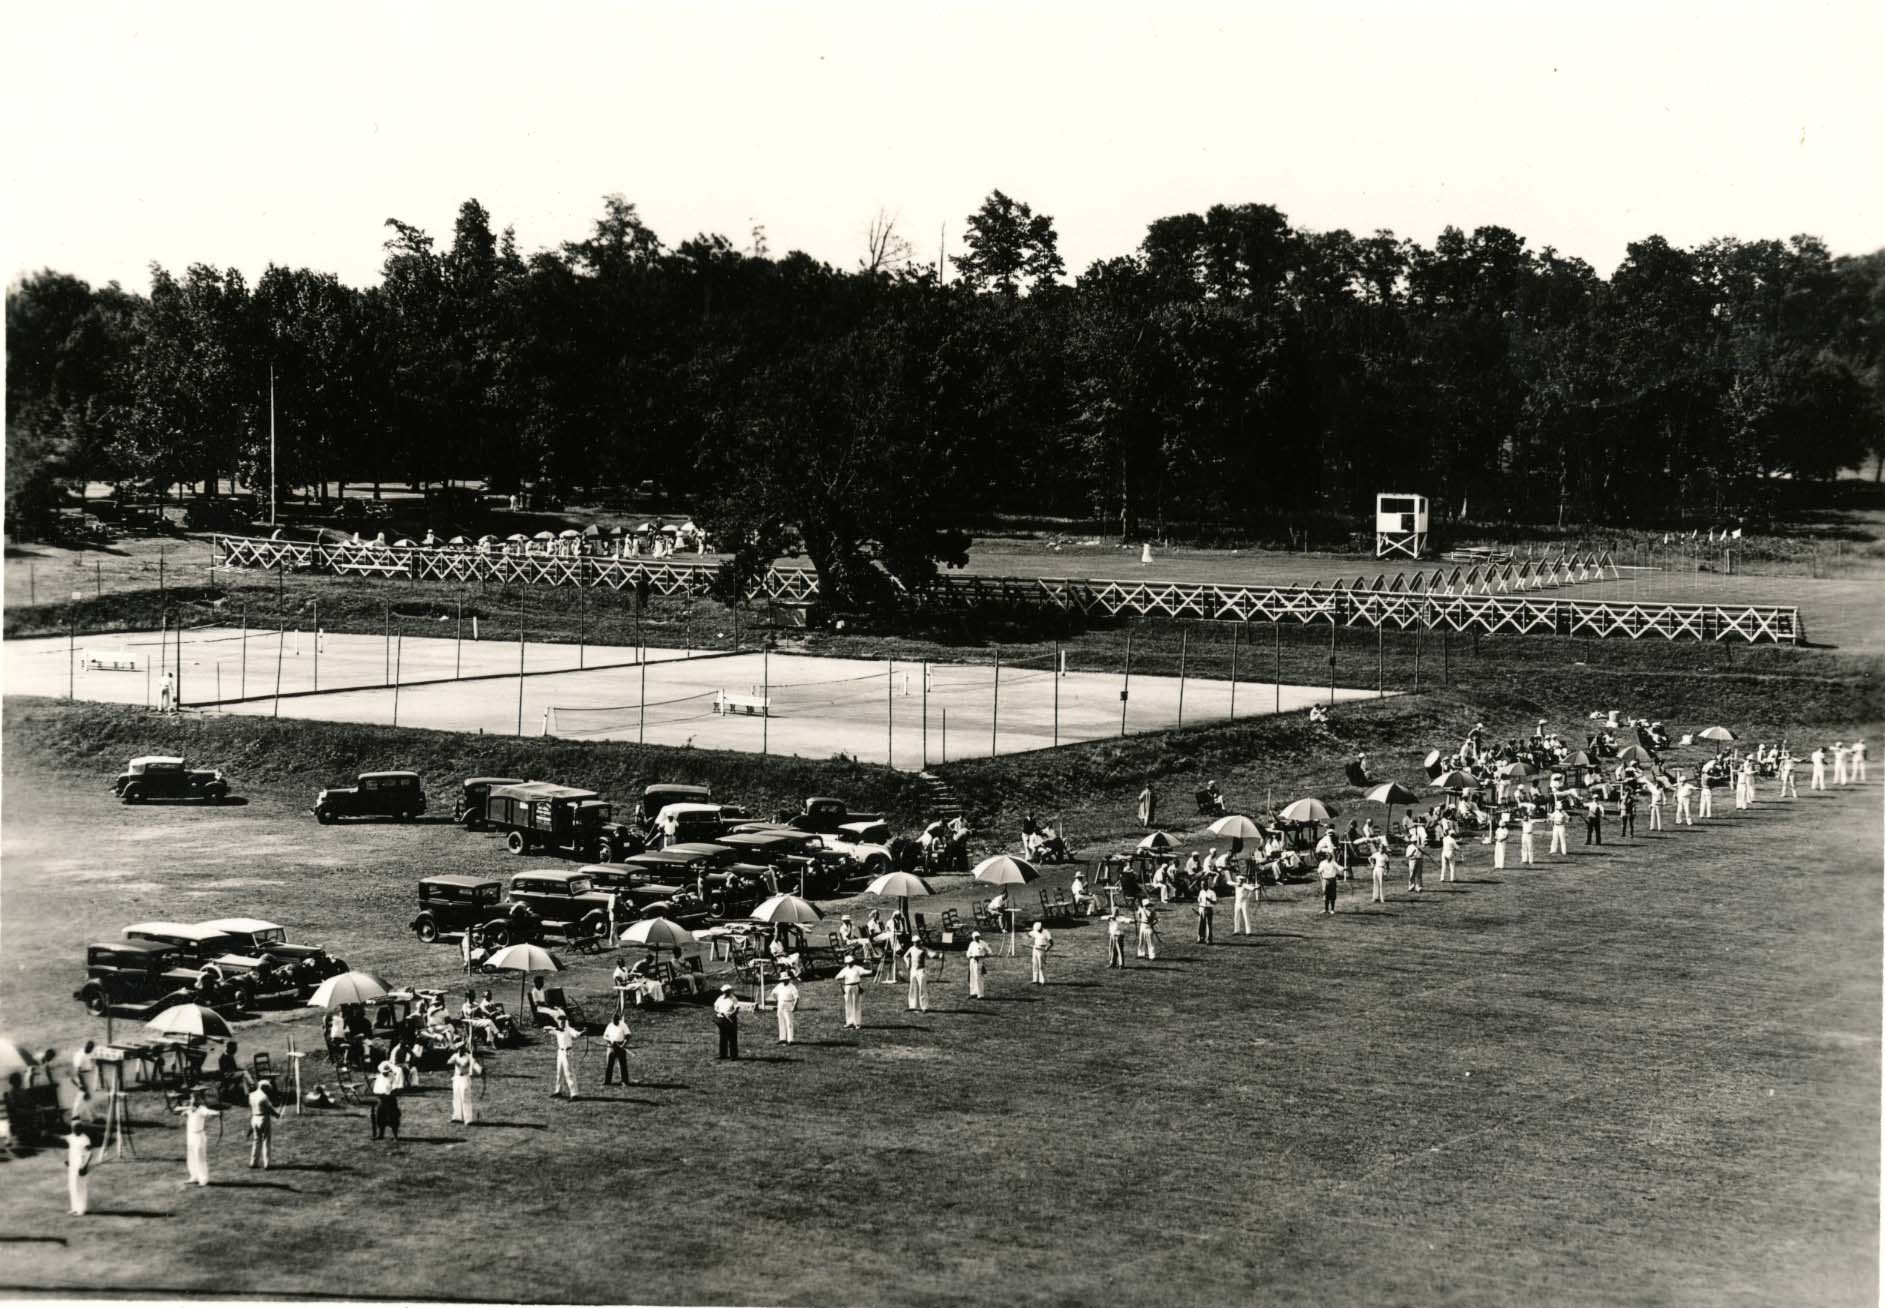 National Archery Tournament, Storrs, CT, 1934